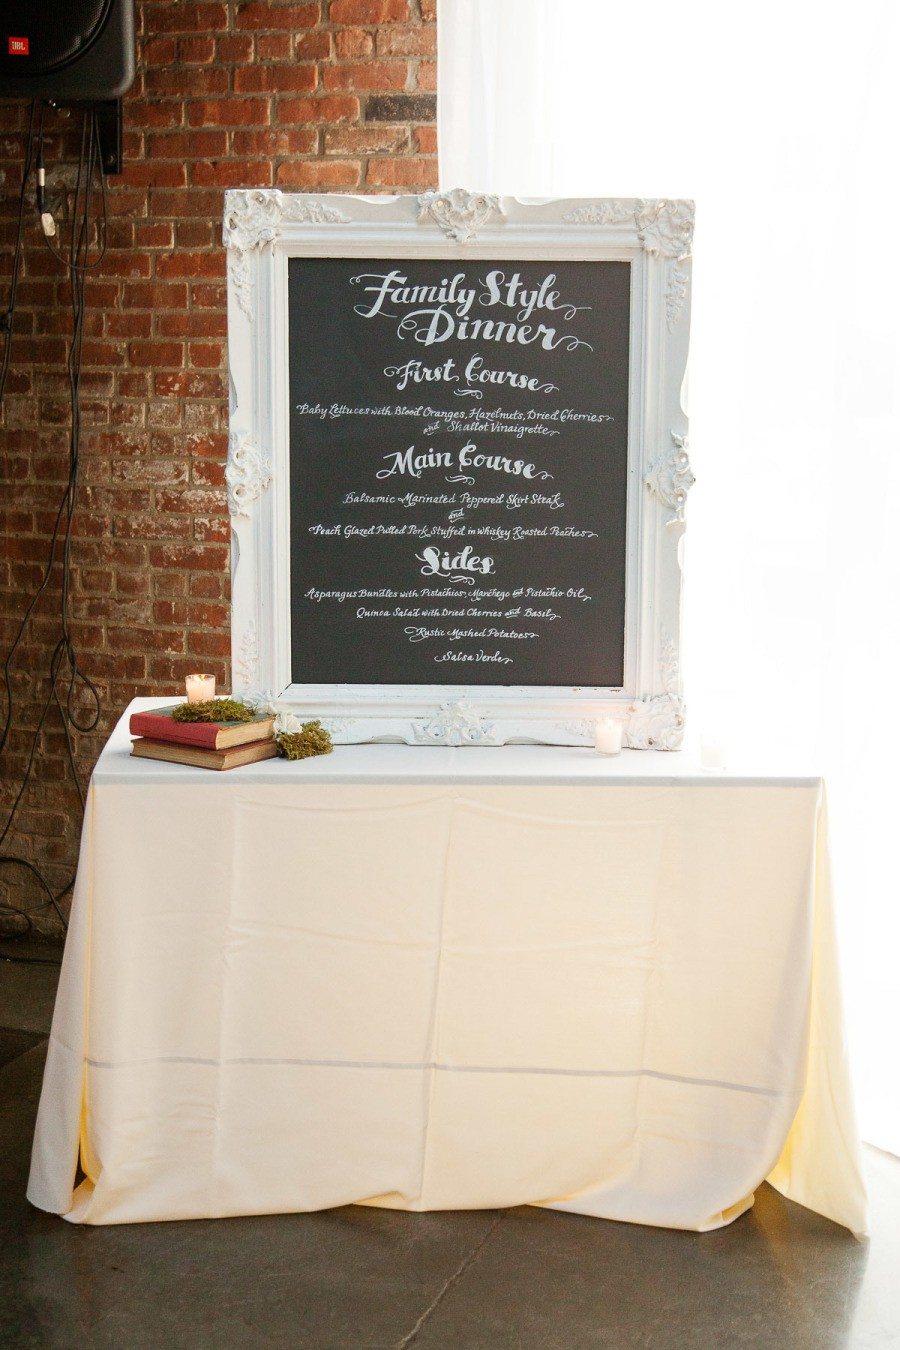 new-york-wedding-loli-events-7-04022015-ky1